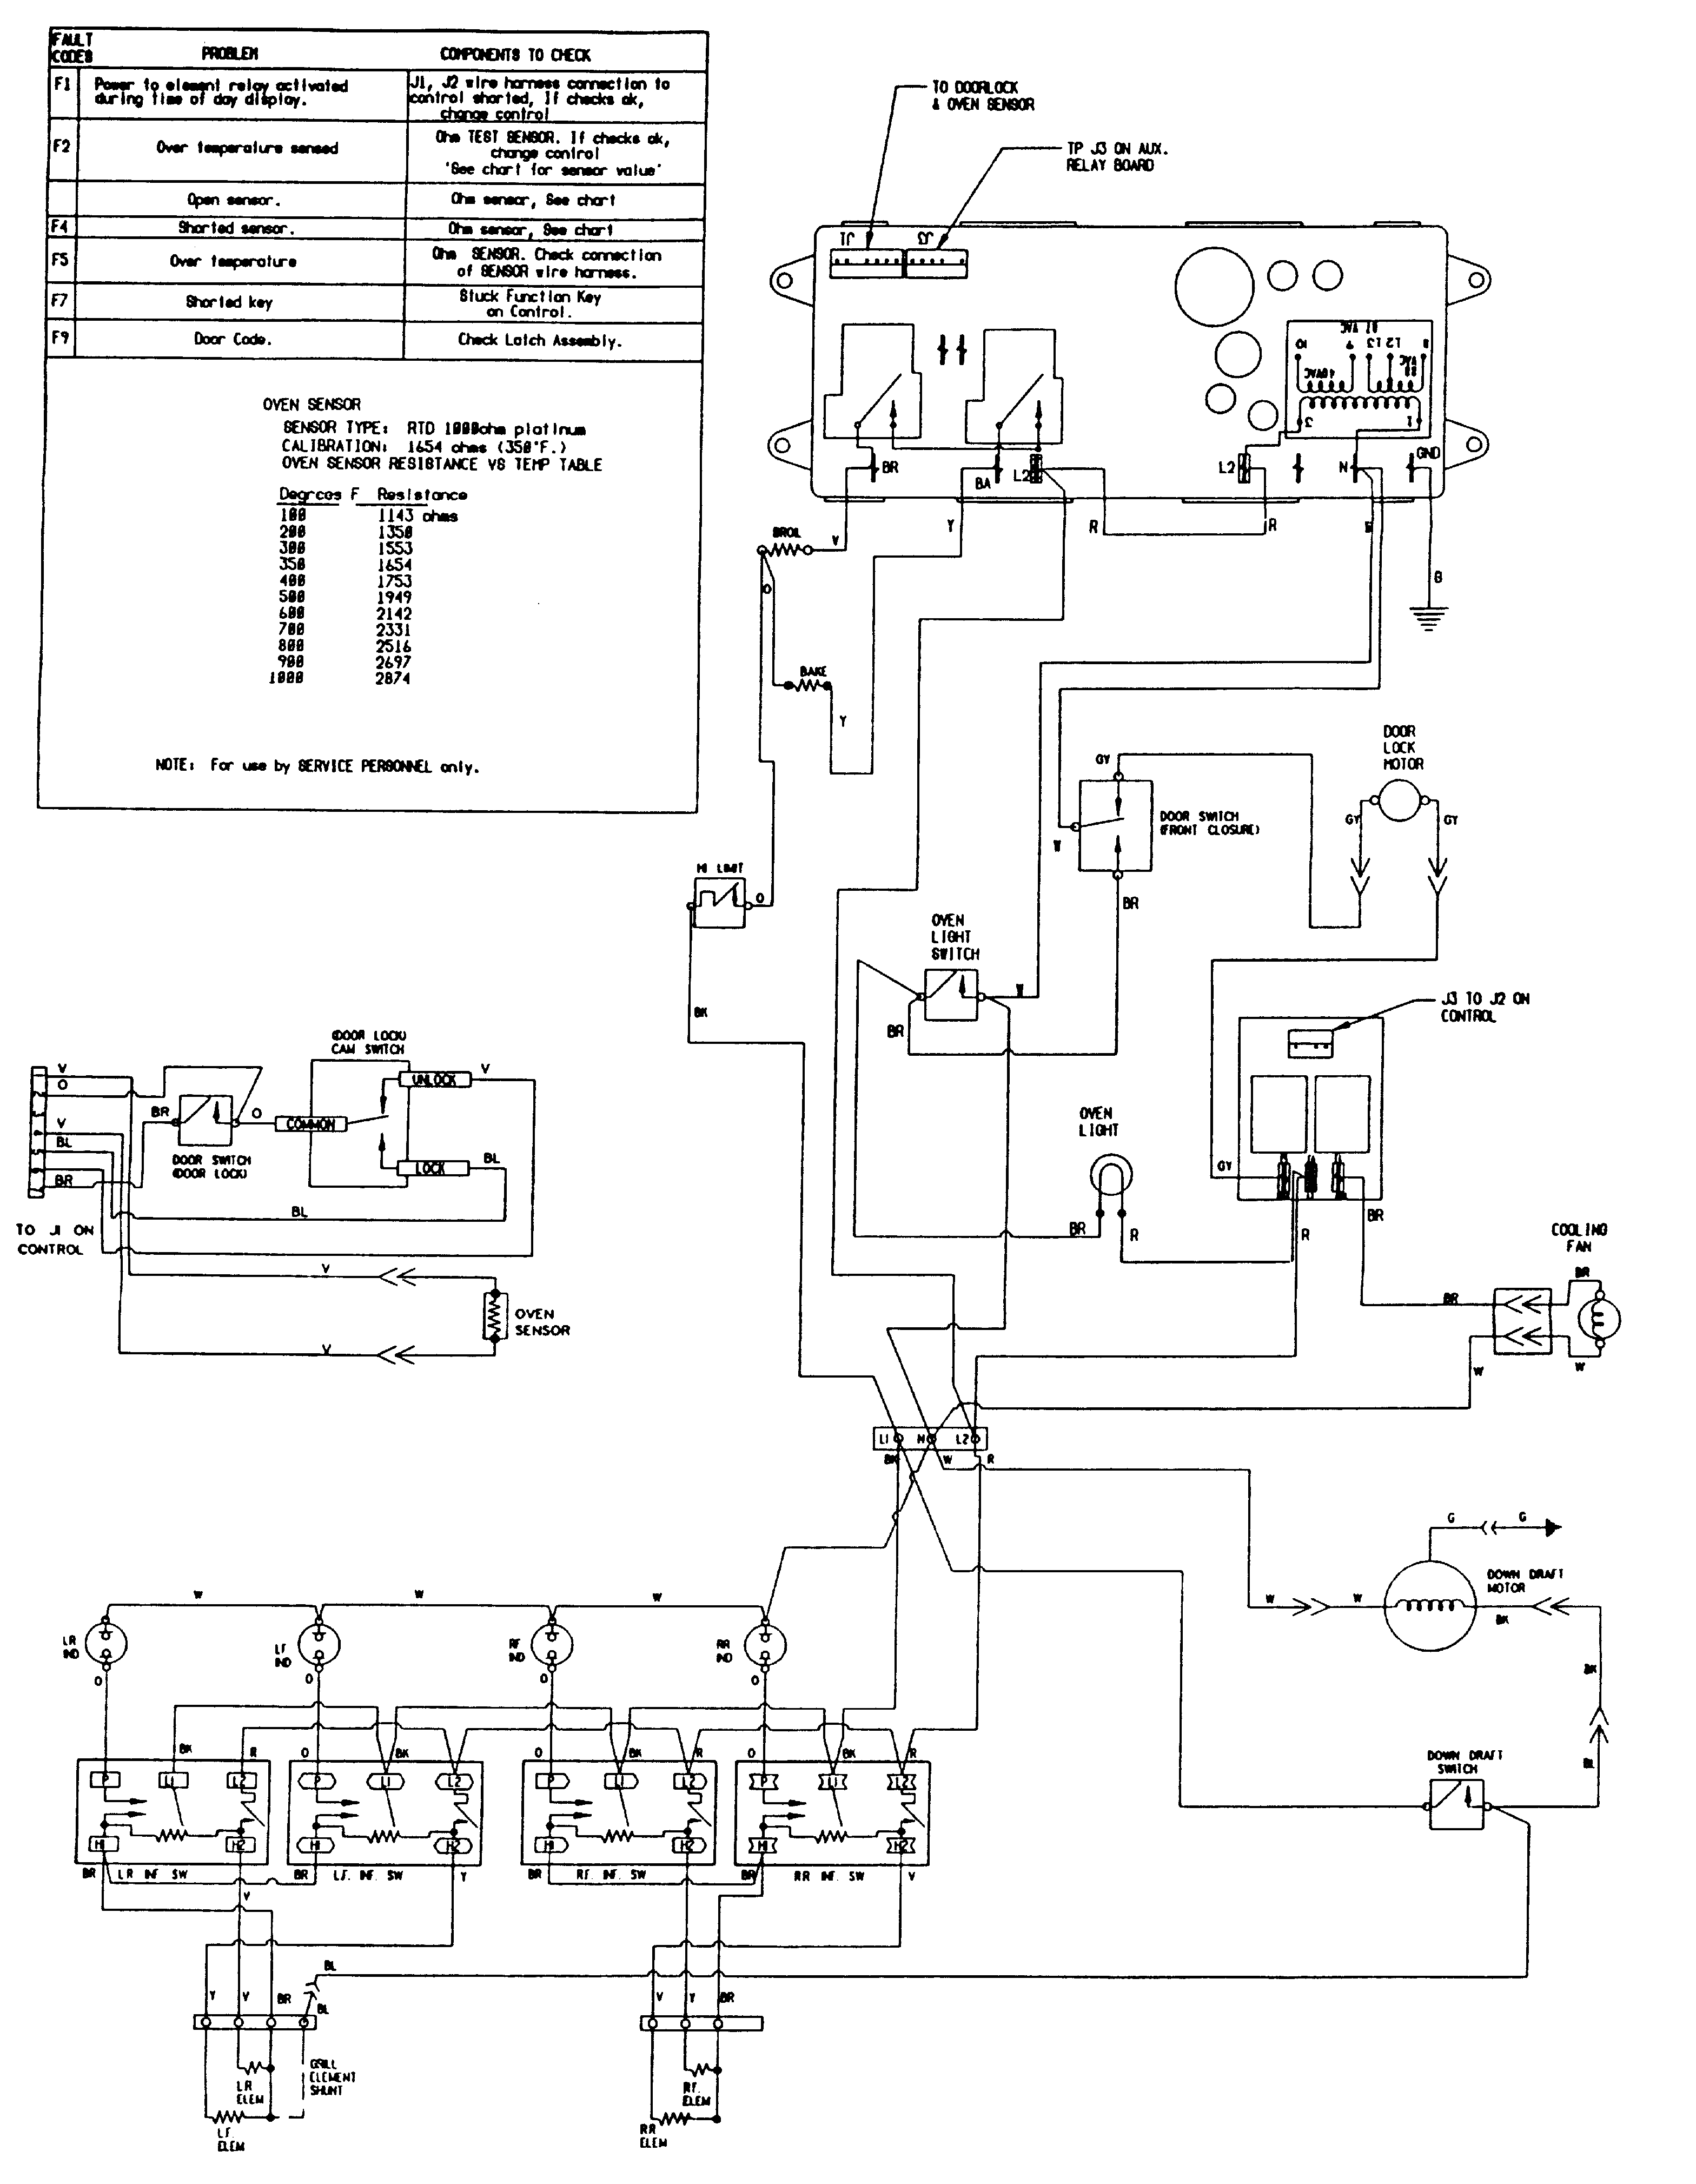 frigidaire affinity washer problems  home and furnitures reference frigidaire affinity washer problems fisher paykel dryer wiring diagram as well frigidaire dishwasher parts